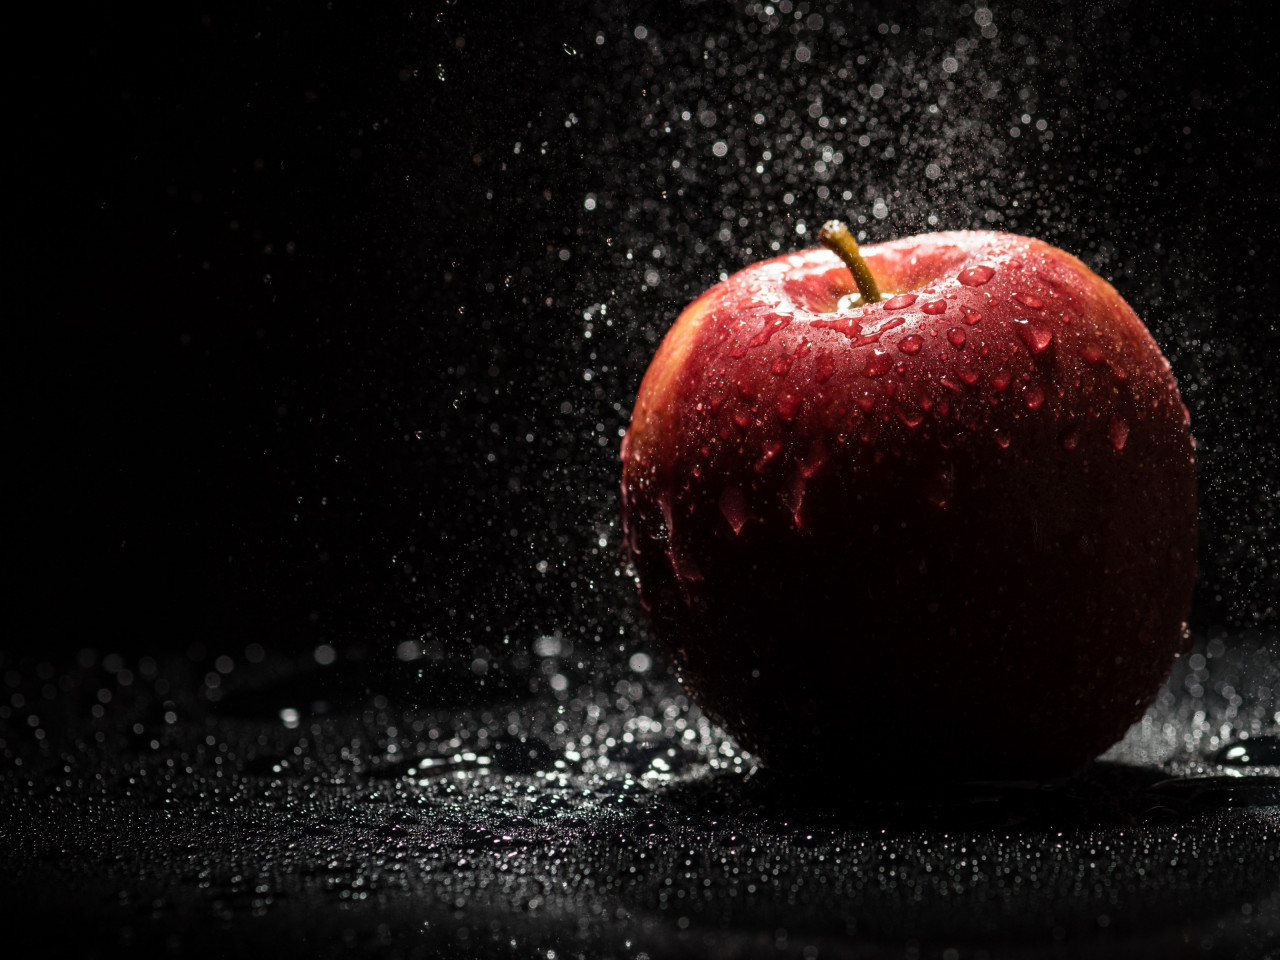 The apple, natural red apple wallpaper 1280x960